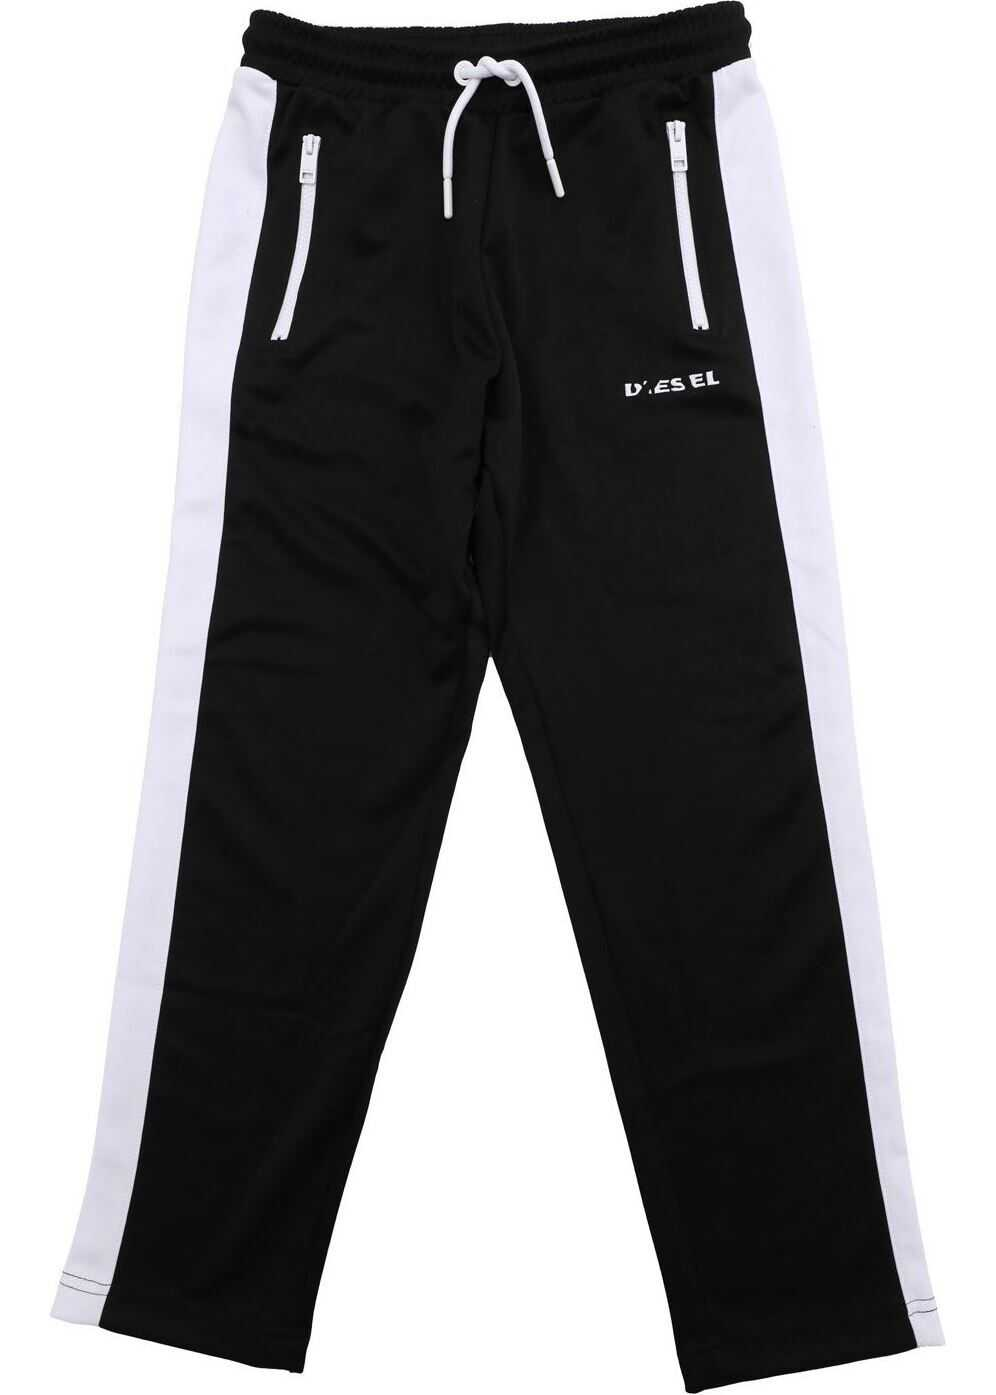 Diesel Black And White Pska Trousers Black